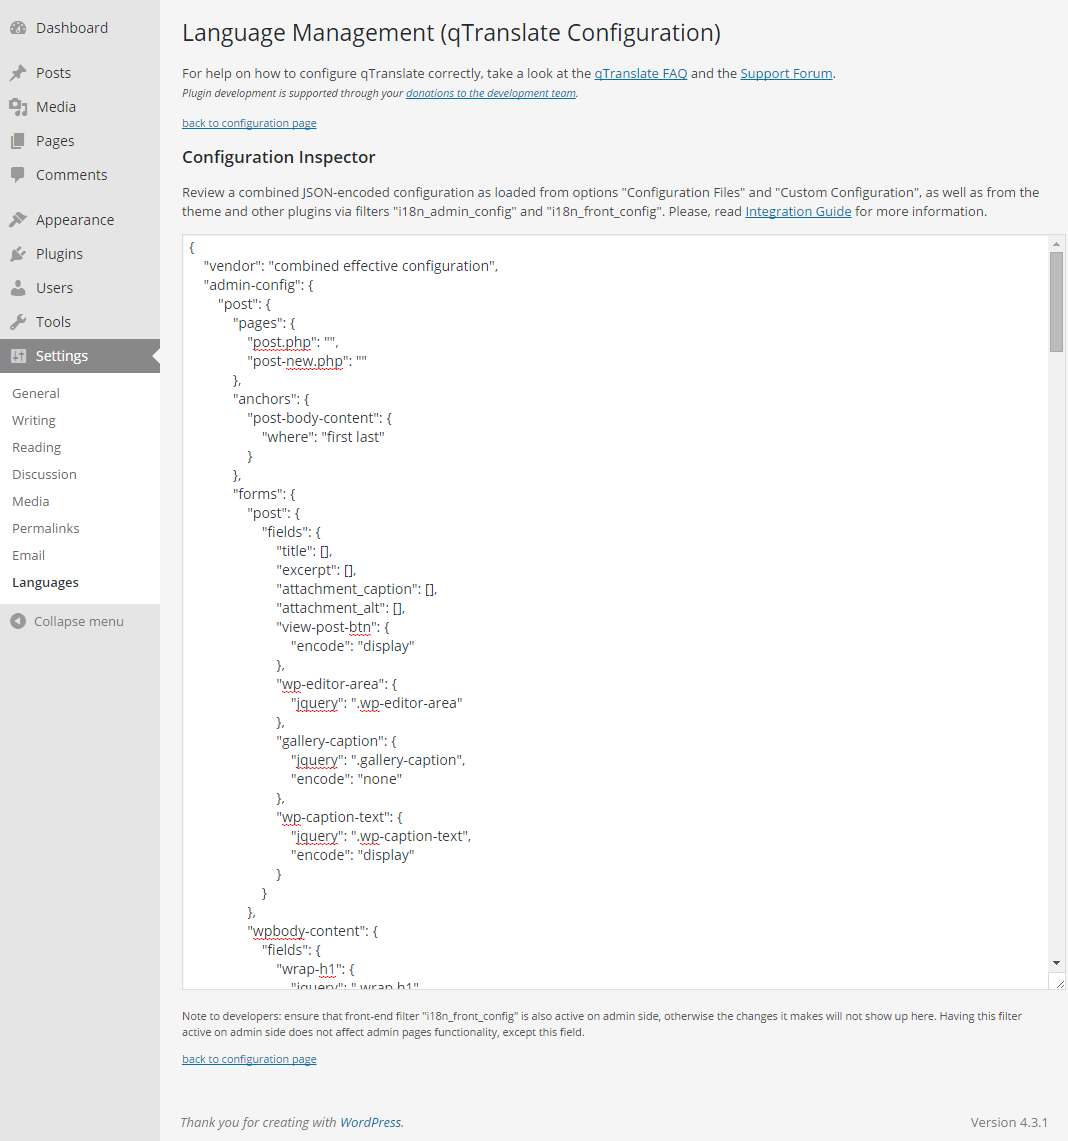 """Language Management Console - page """"Configuration Inspector"""". This page allows to review the combined resulting JSON-encoded configuration of qTranslate-X. Read <a href=""""https://qtranslatexteam.wordpress.com/integration/"""" title=""""Integration Guide"""">Integration Guide</a> for more information."""